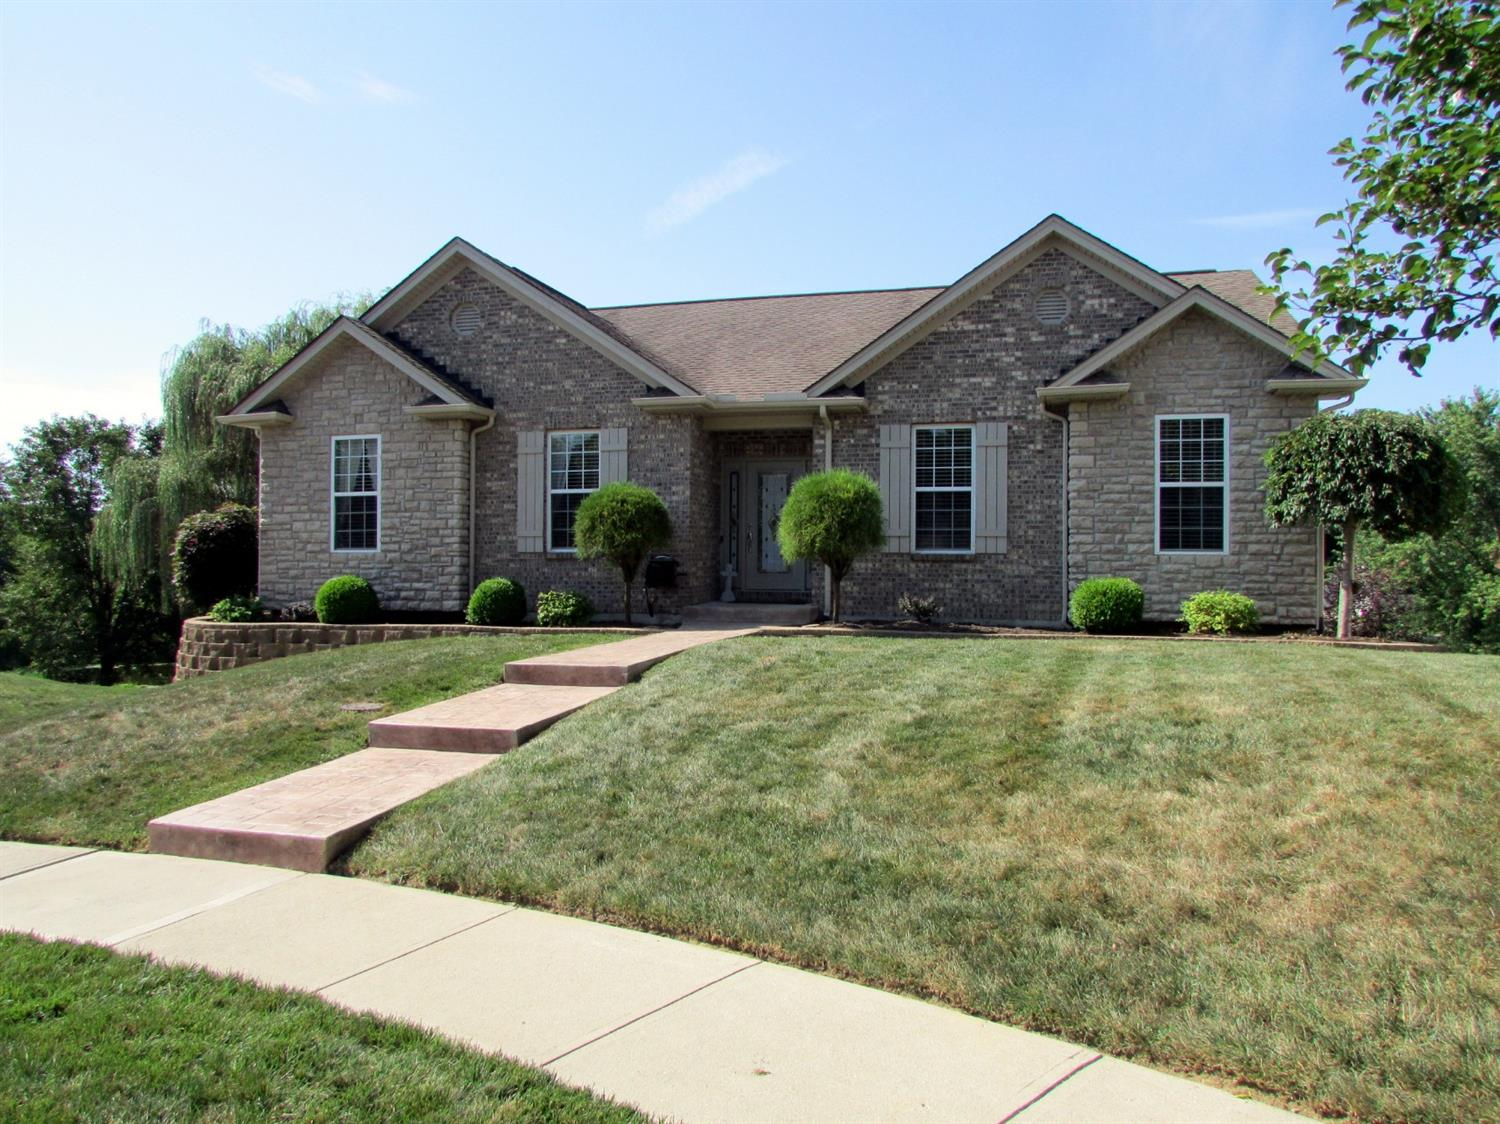 Property for sale at 8673 Kates Way, West Chester,  Ohio 45069